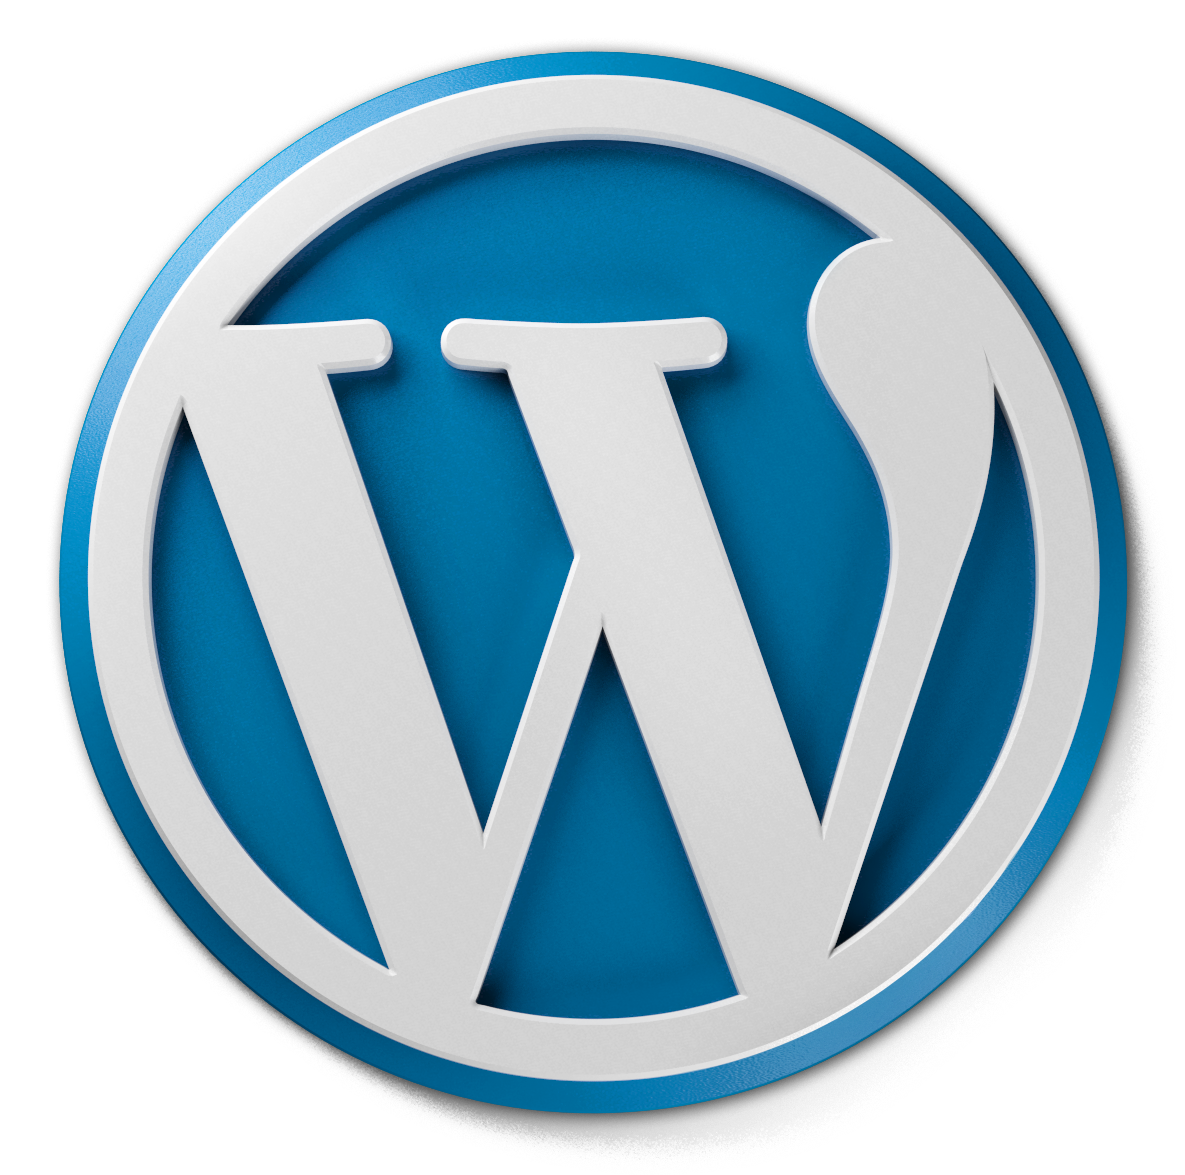 Website logo png. File wordpress wikimedia commons